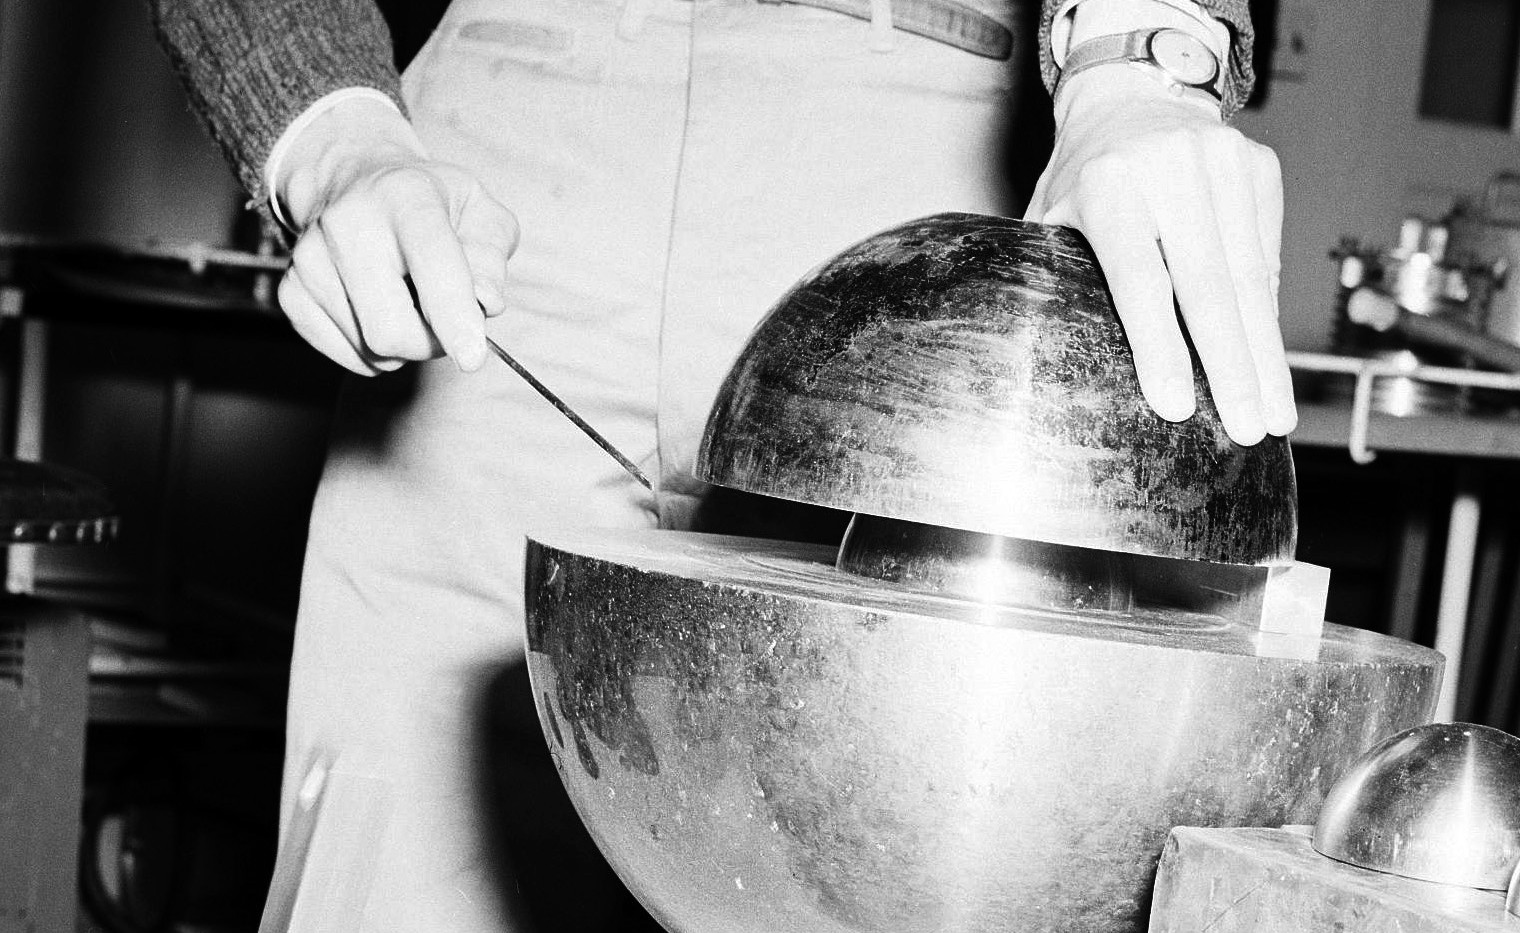 The Core of an Atom Bomb